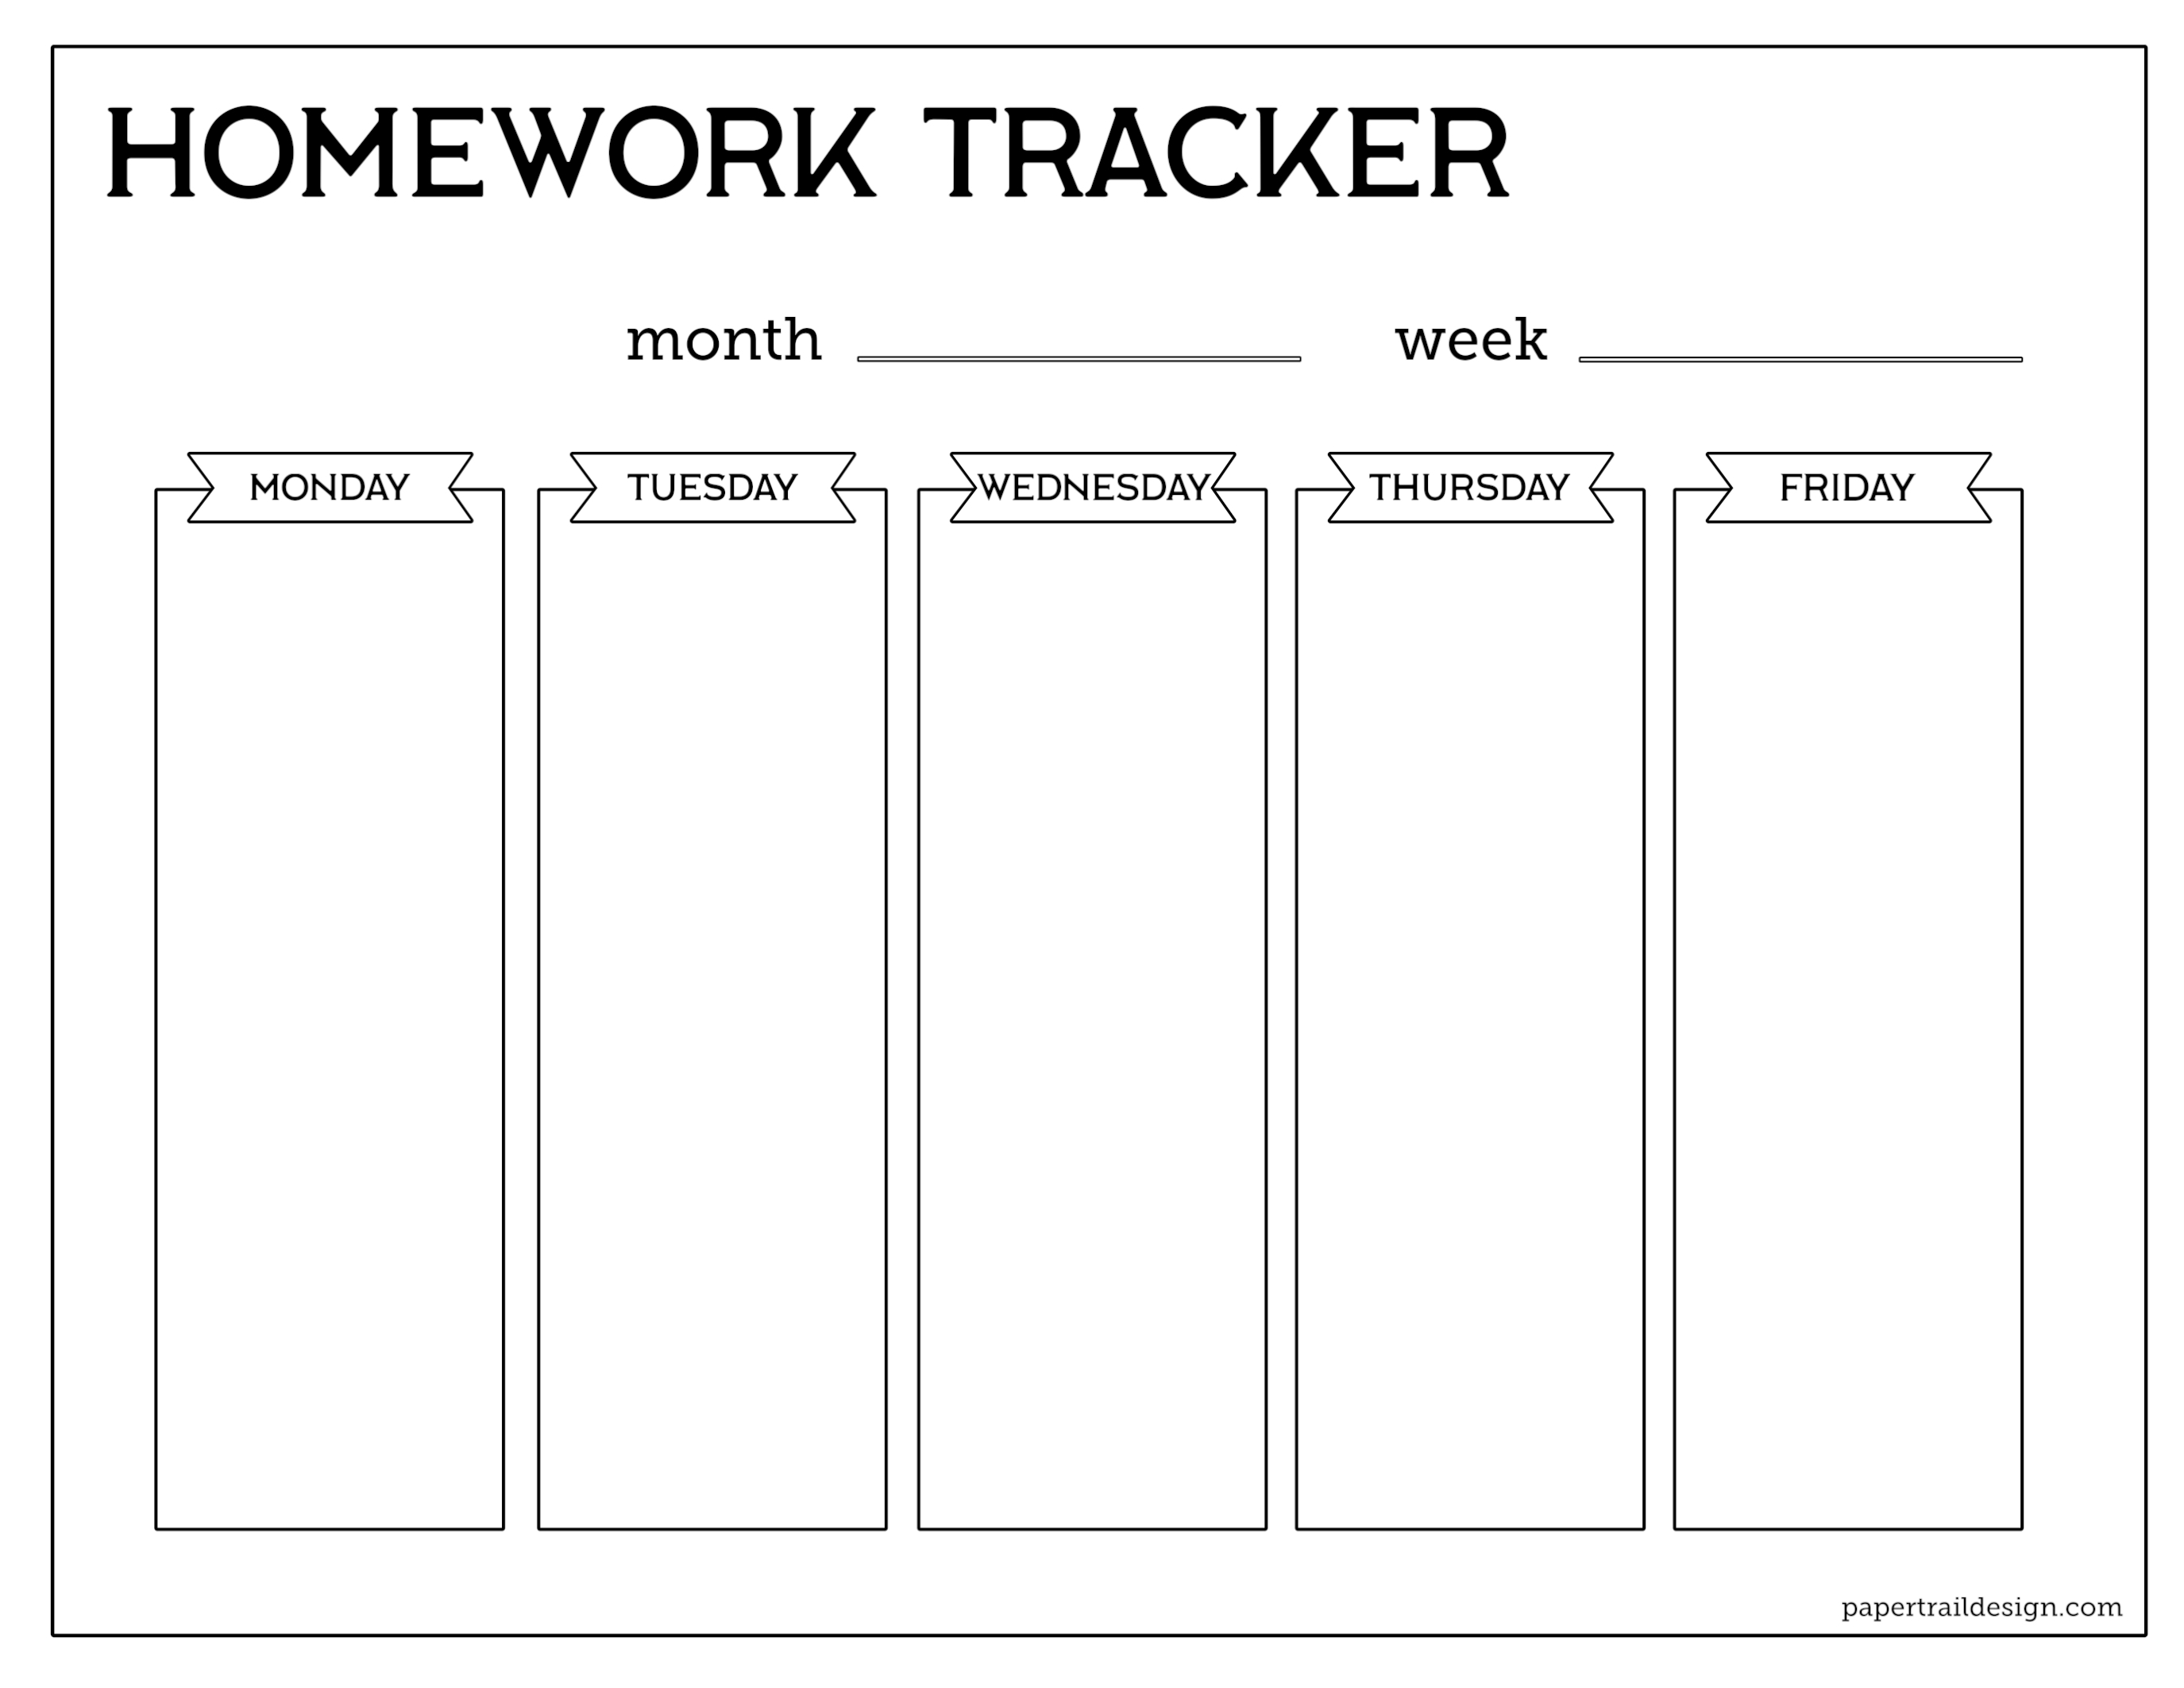 Click The Following Links To Print Free Printable Student Homework Planner Template